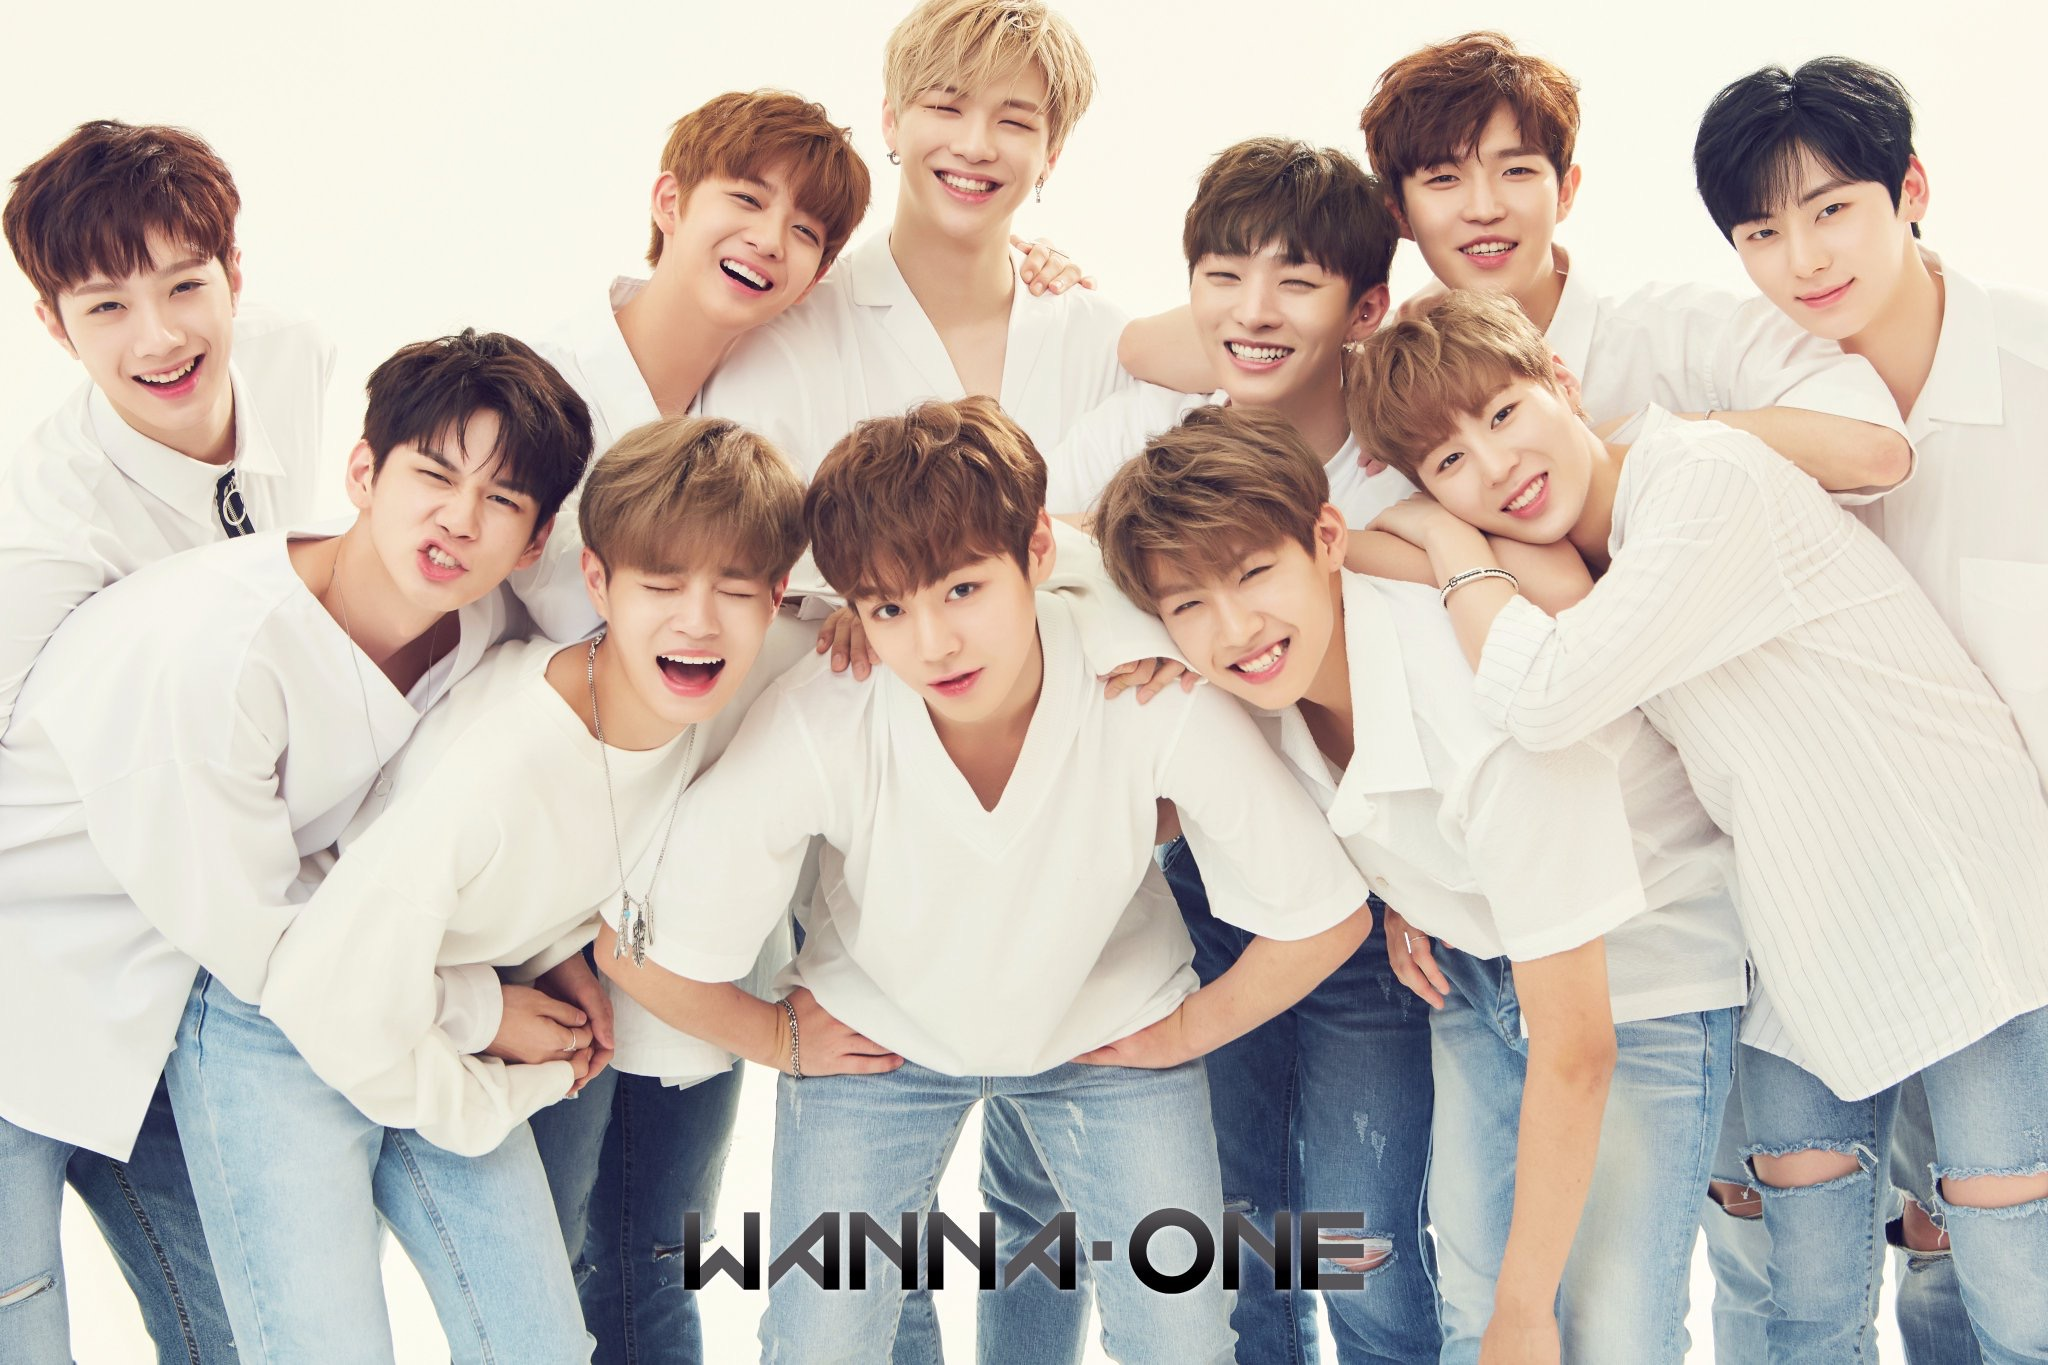 Wanna One Images Wanna One Hd Wallpaper And Background Photos 40571036